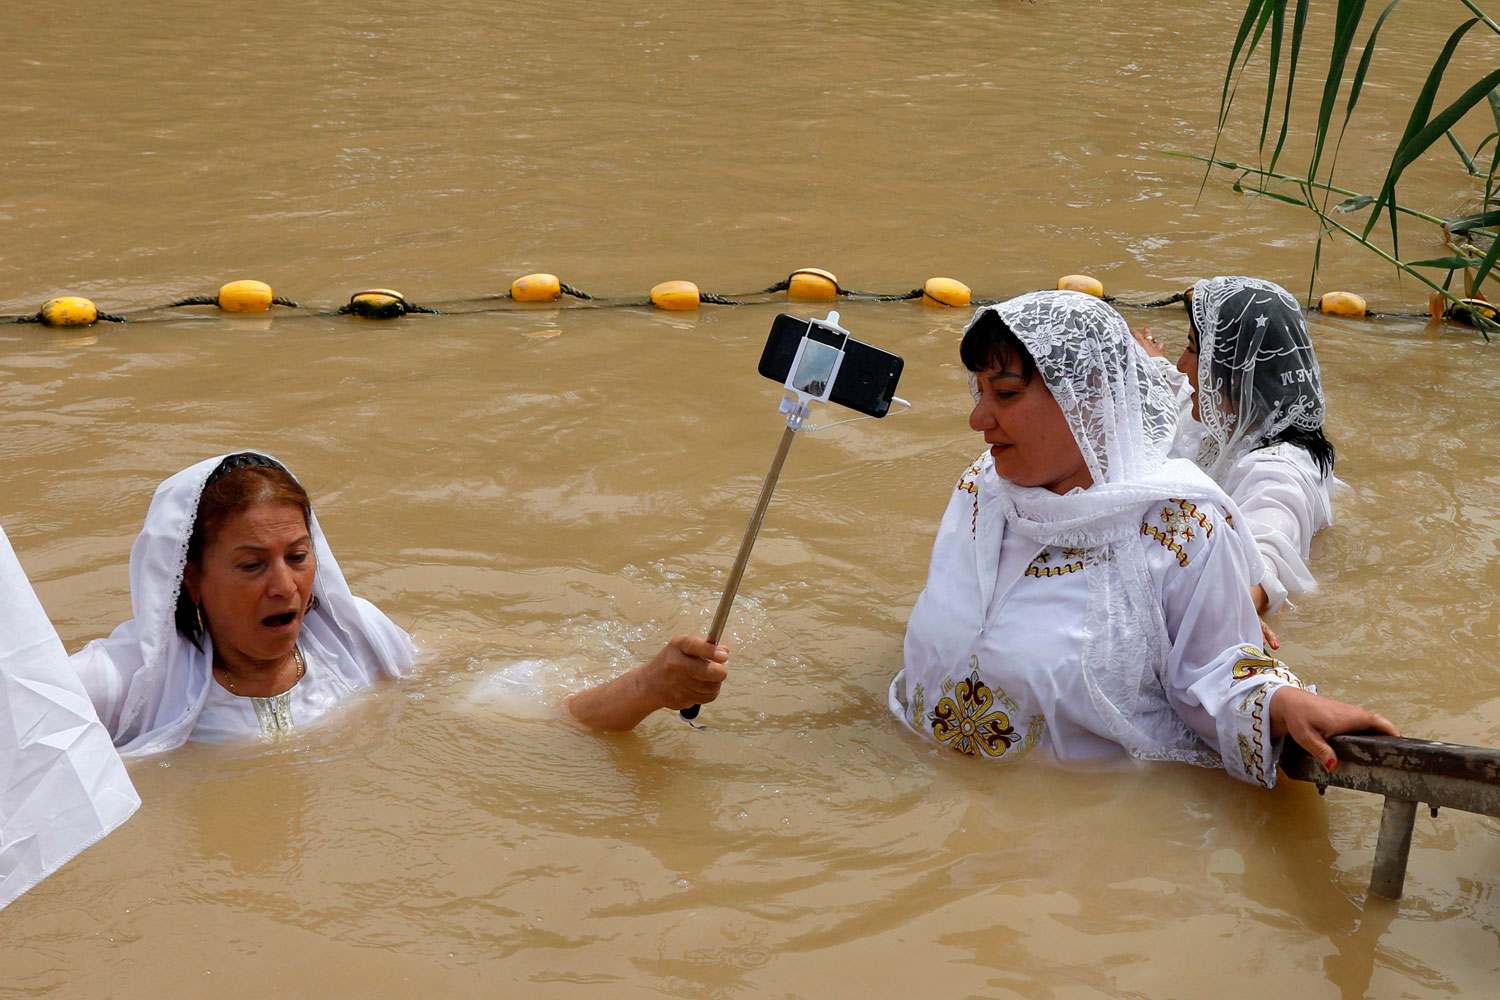 A Coptic Egyptian pilgrim holds a selfie stick as she submerges herself in the waters of the Jordan River on April 3 at the Qasr al-Yahud baptismal site near the West Bank city of Jericho during their Easter pilgrimage to the Holy Land. According to the gospels, Jesus Christ was baptized in the waters of the Jordan River by John the Baptist. (Gali Tibbon/AFP/Getty Images)